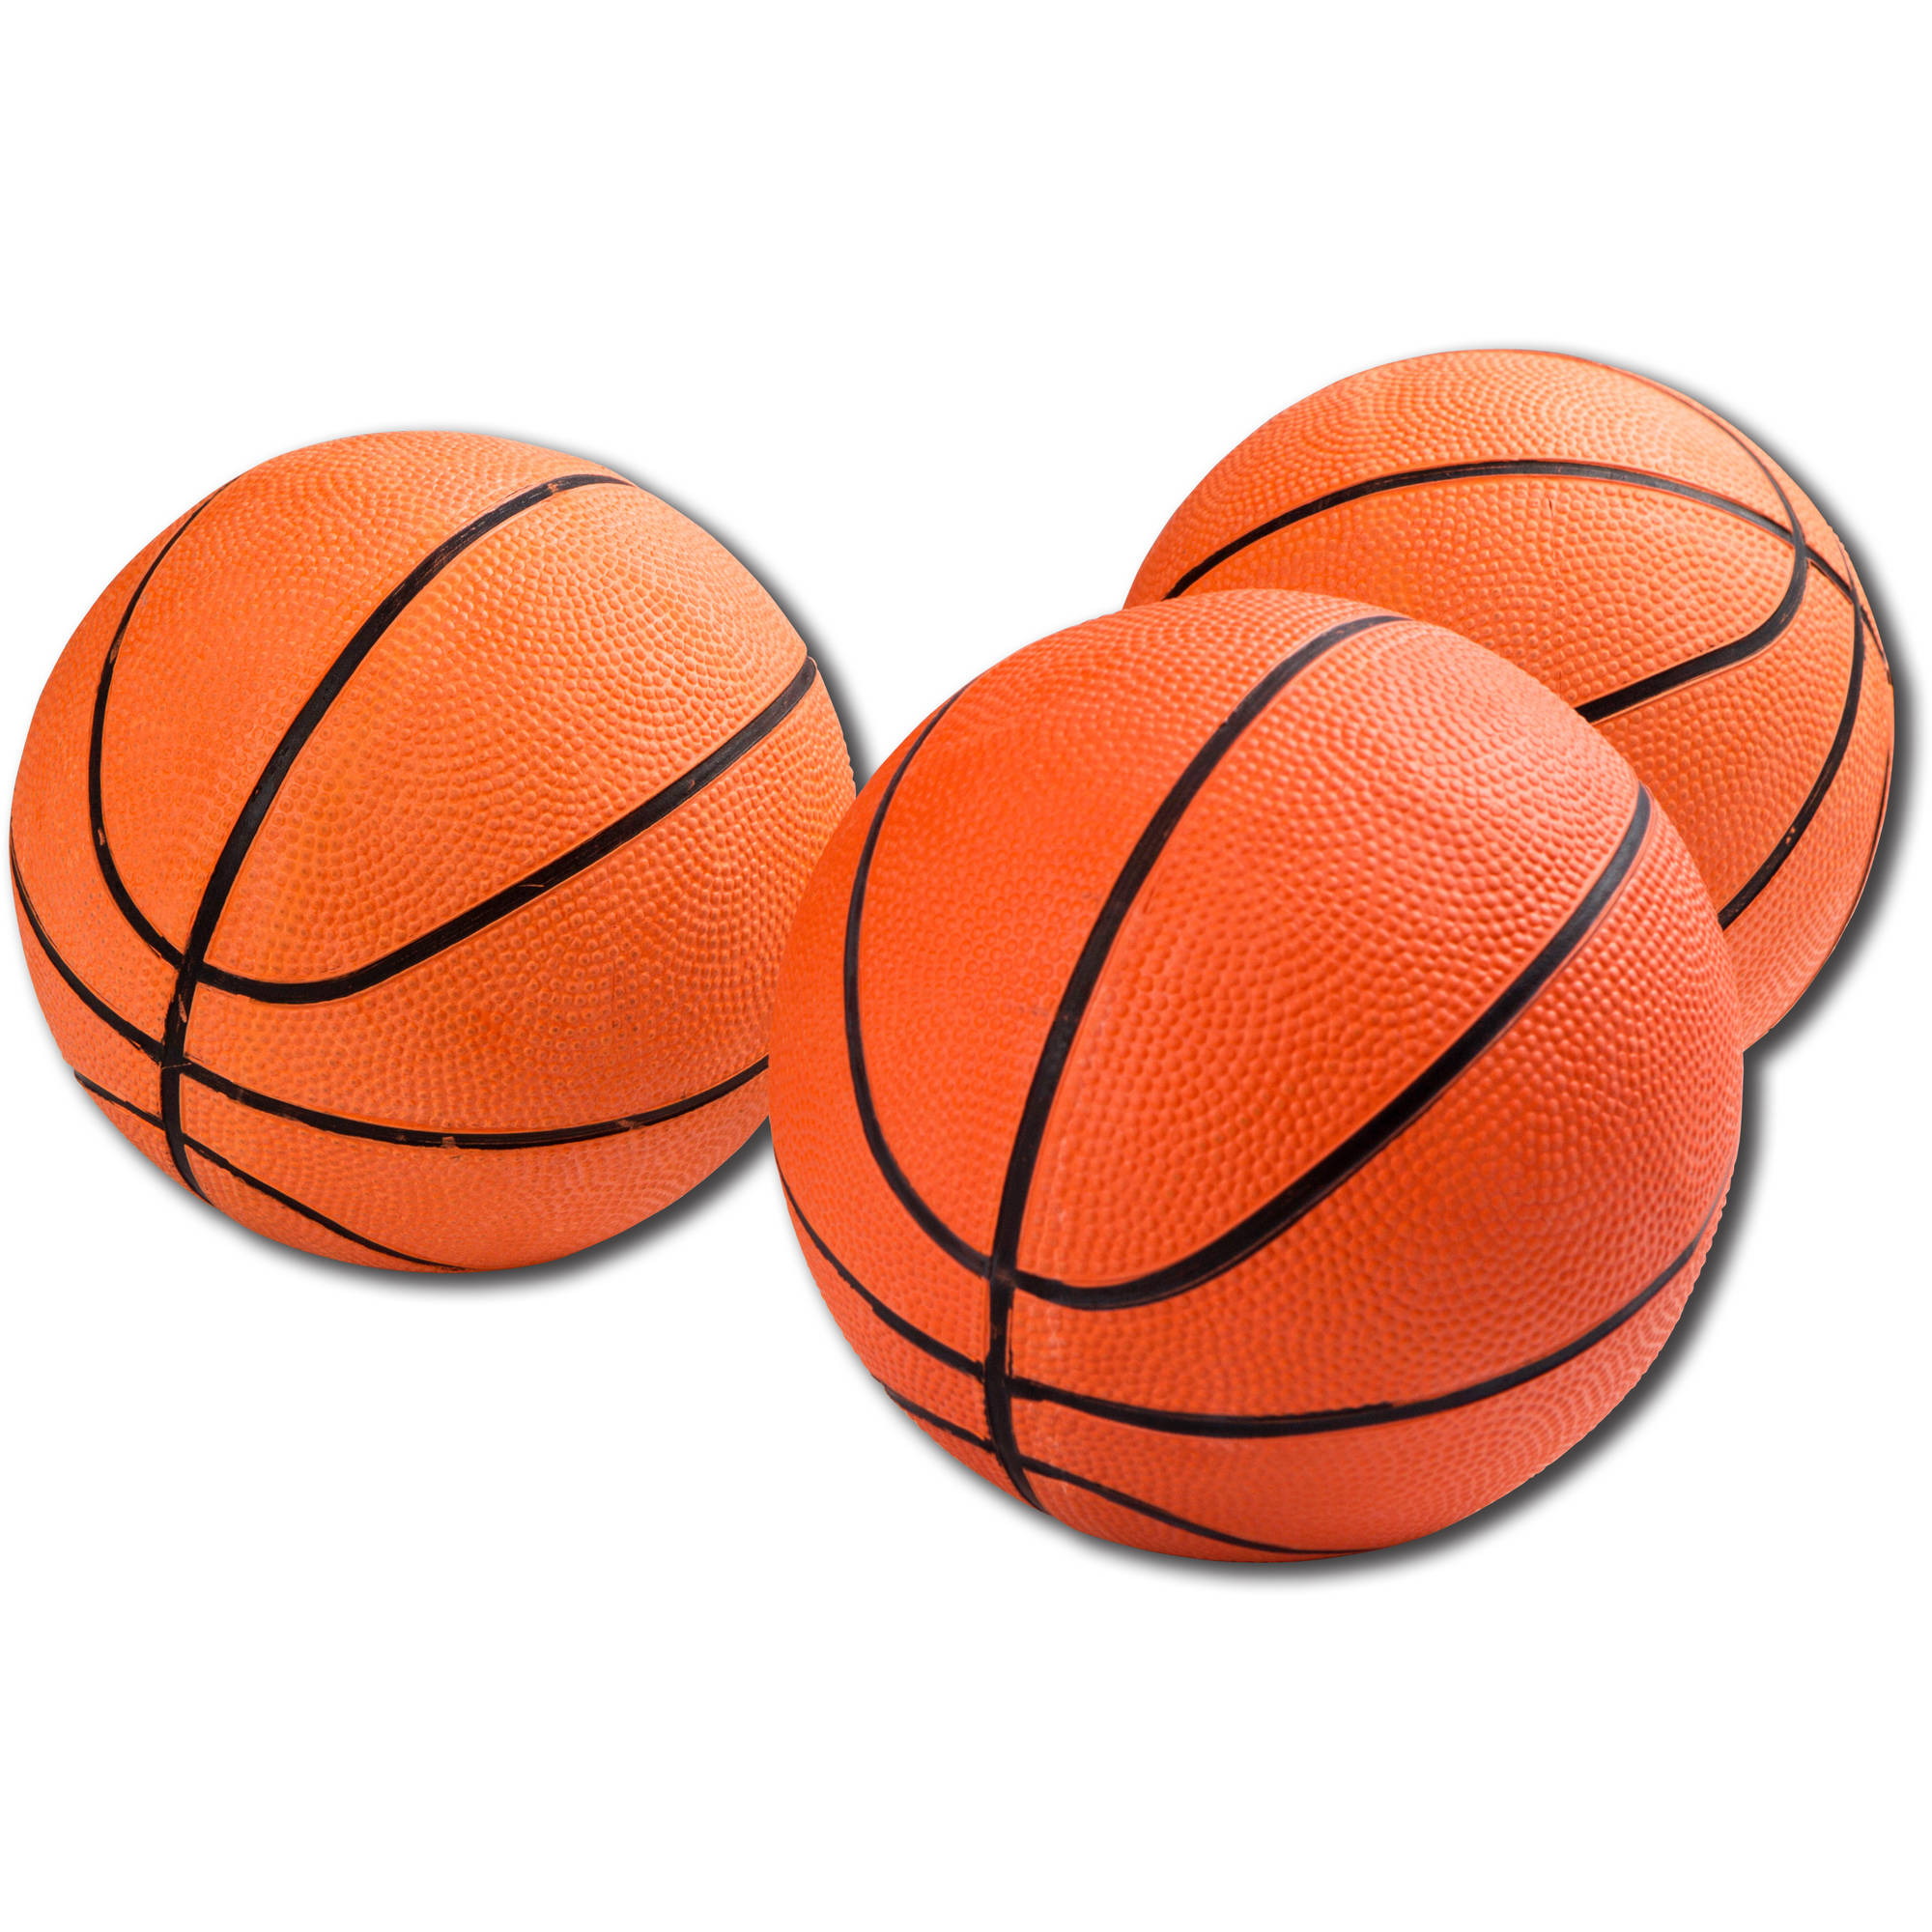 MD Sports 3 Rubber Arcade Basketballs